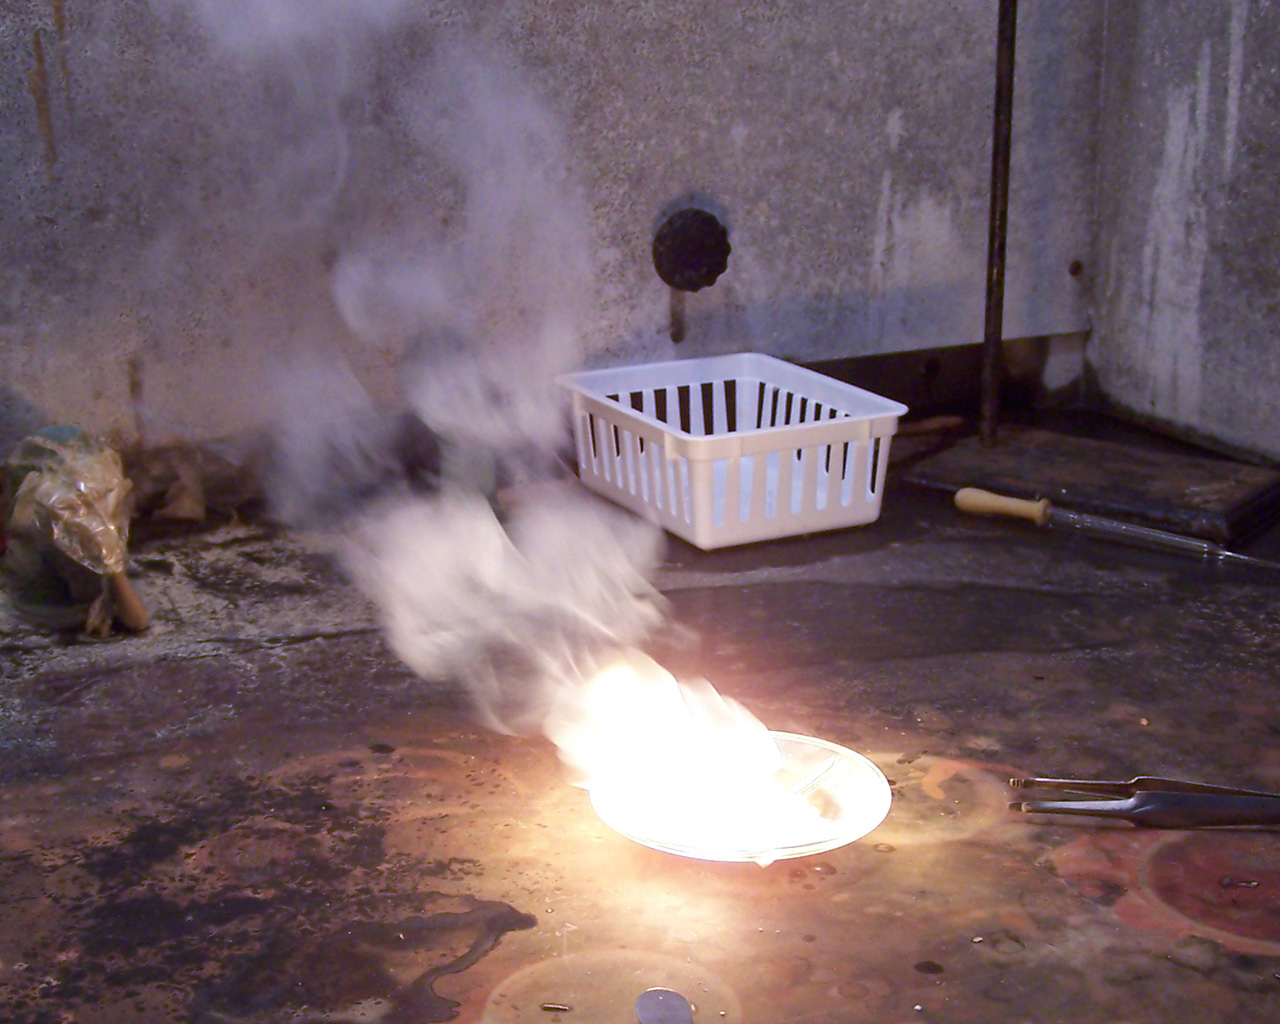 The following pictures show a chunk of phosphorus which has been lit